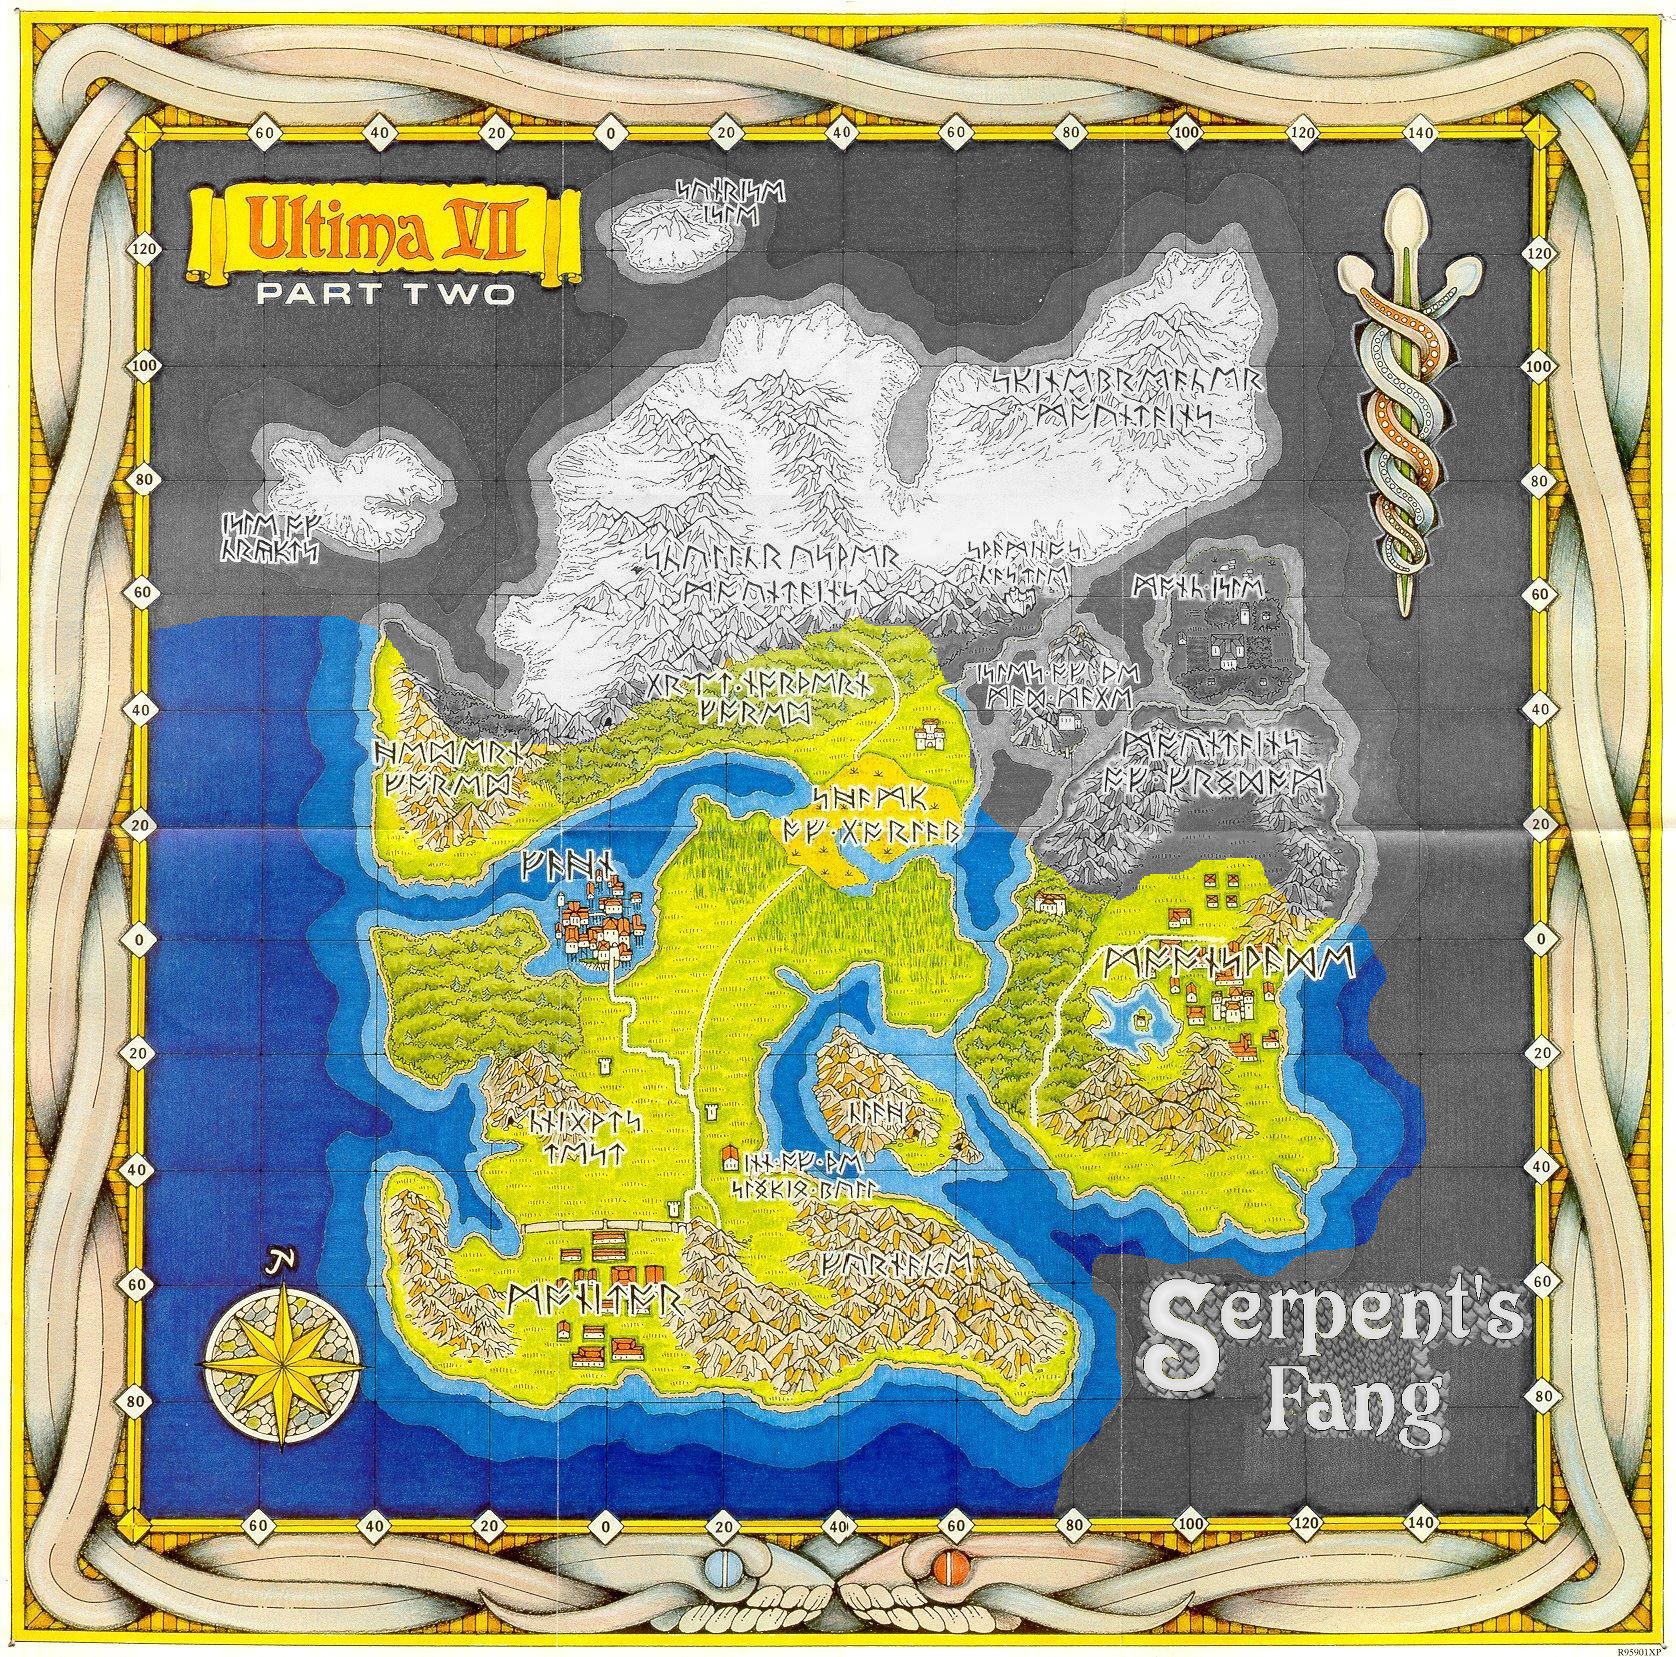 Map of Serpent Isle